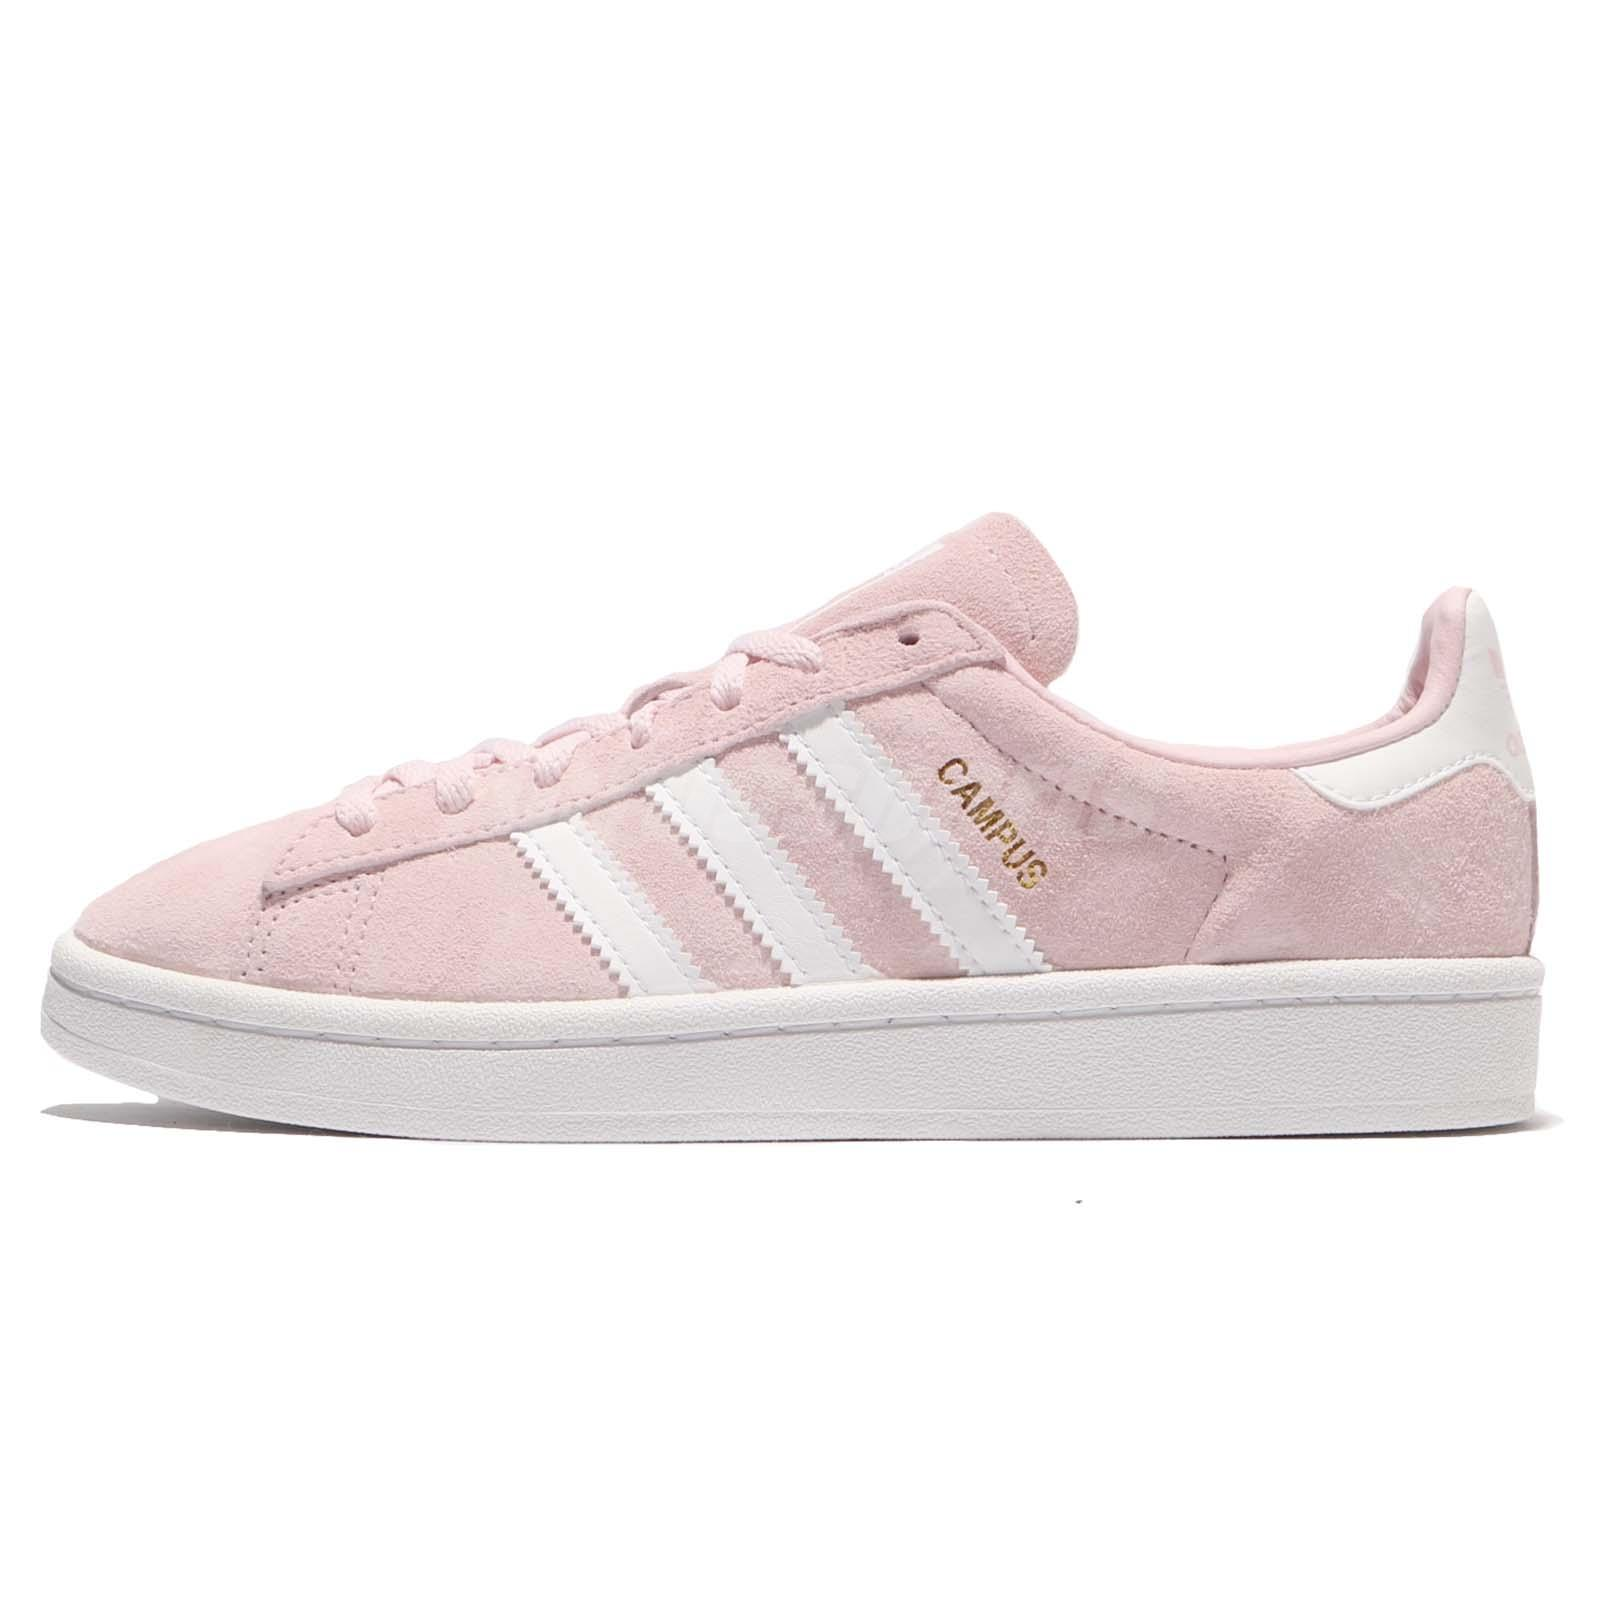 395a3e11f71f8 Buy cheap pink suede adidas  Up to OFF49% DiscountDiscounts